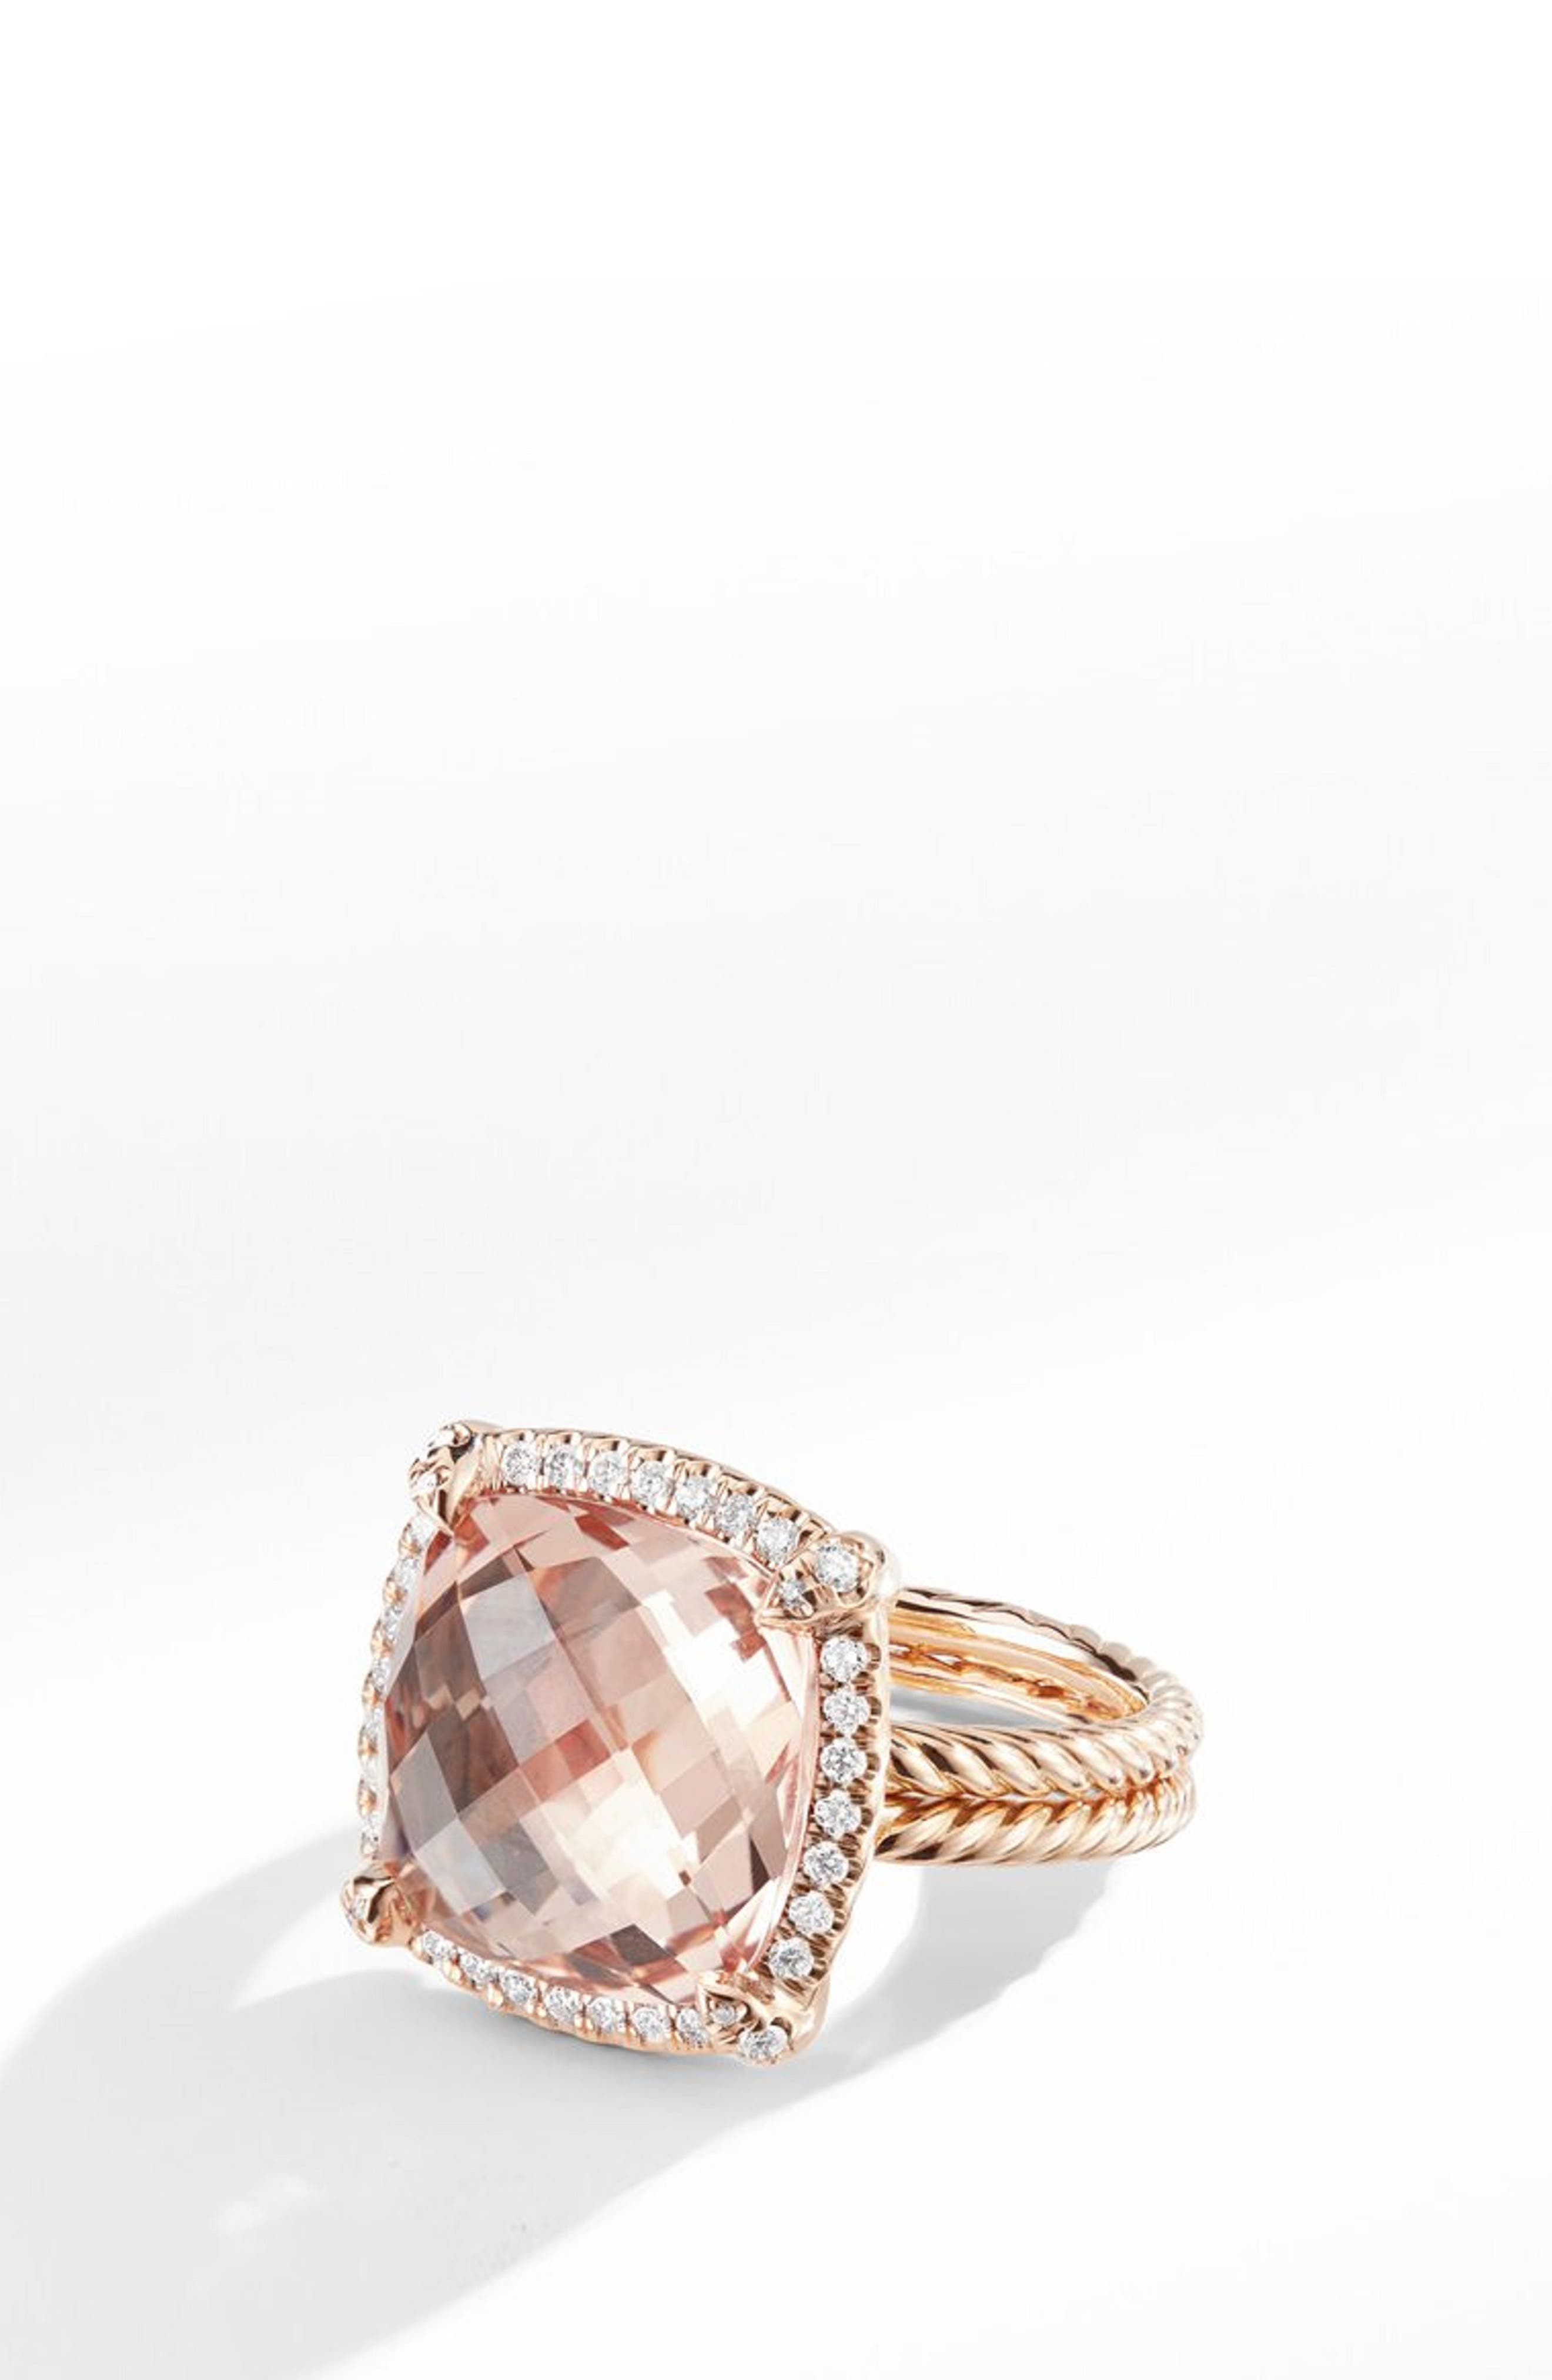 Chatelaine Pavé Bezel Ring in 18K Rose Gold with Morganite,                             Main thumbnail 1, color,                             ROSE GOLD/ DIAMOND/ MORGANITE